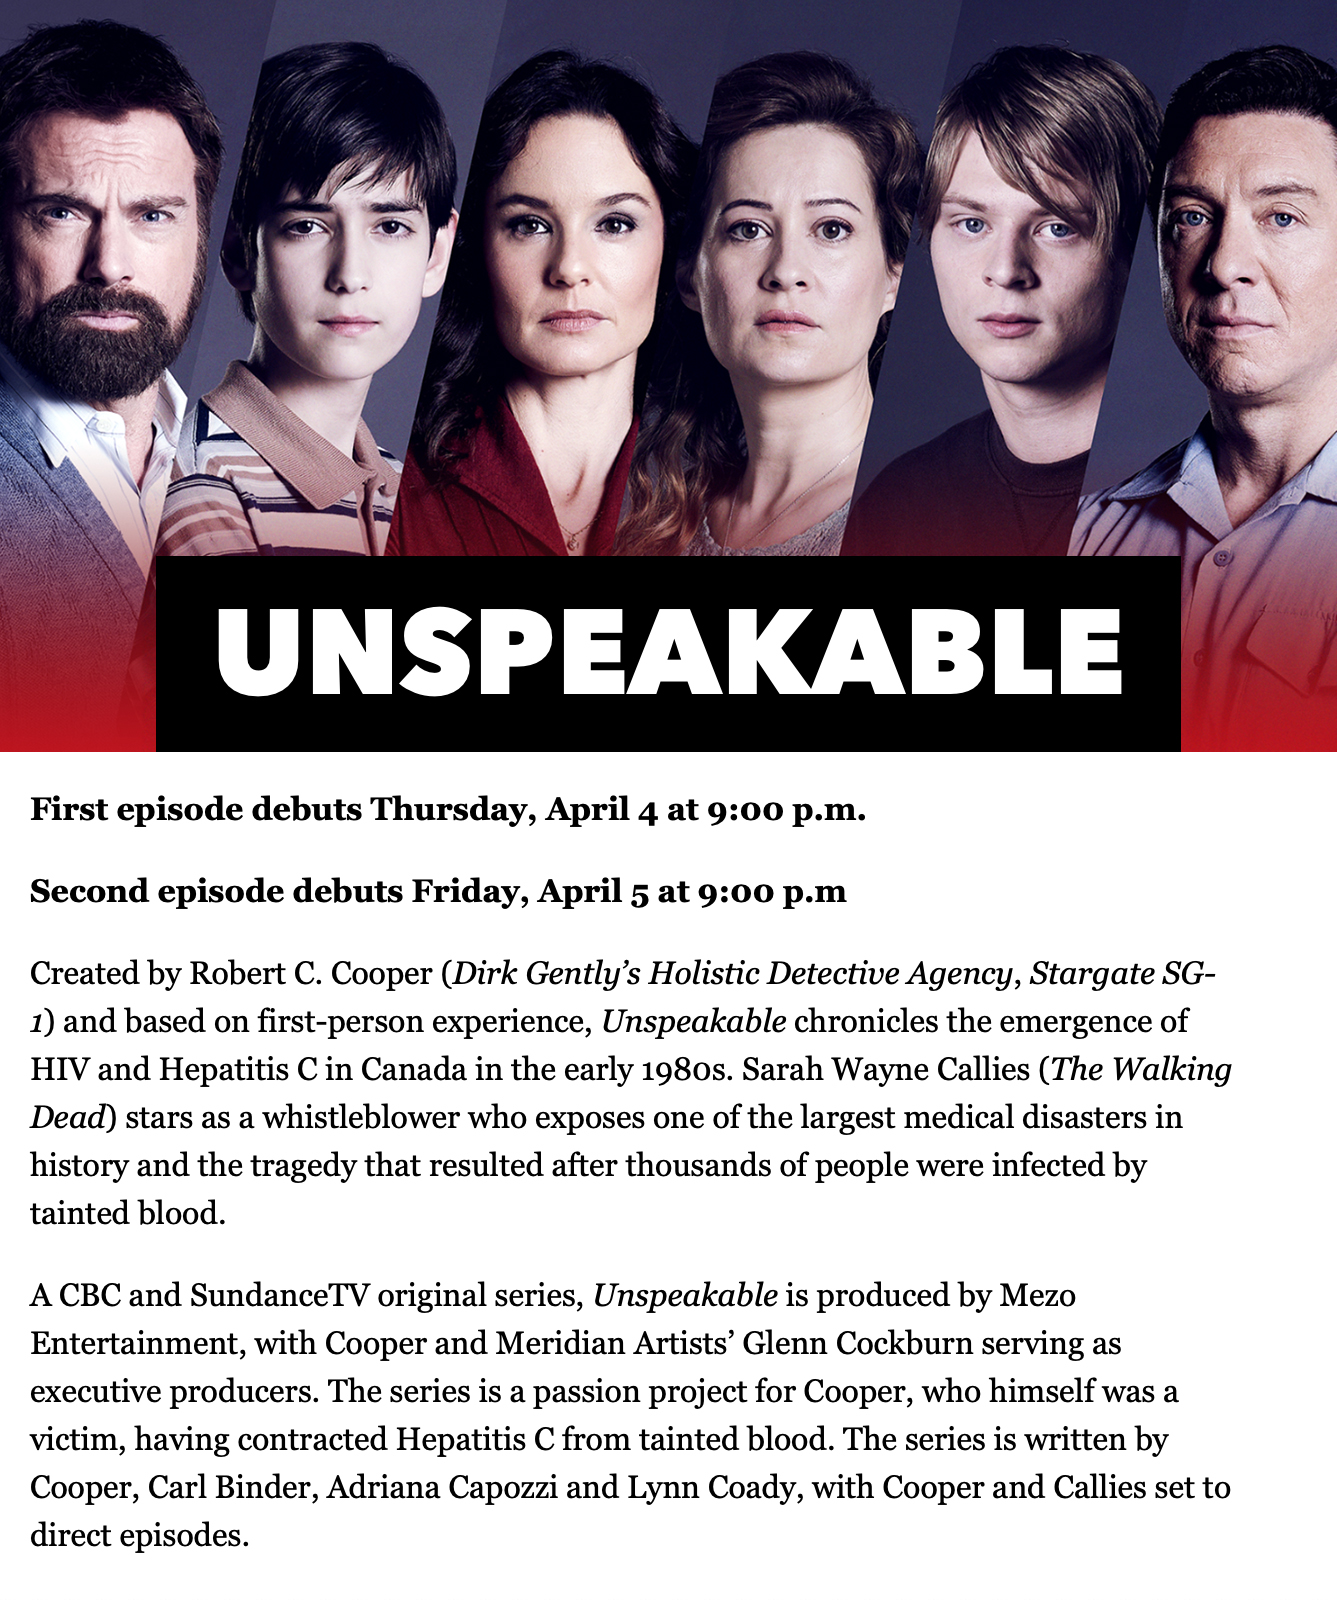 UNSPEAKABLE: Will premiere in the US on SundanceTV (April 4